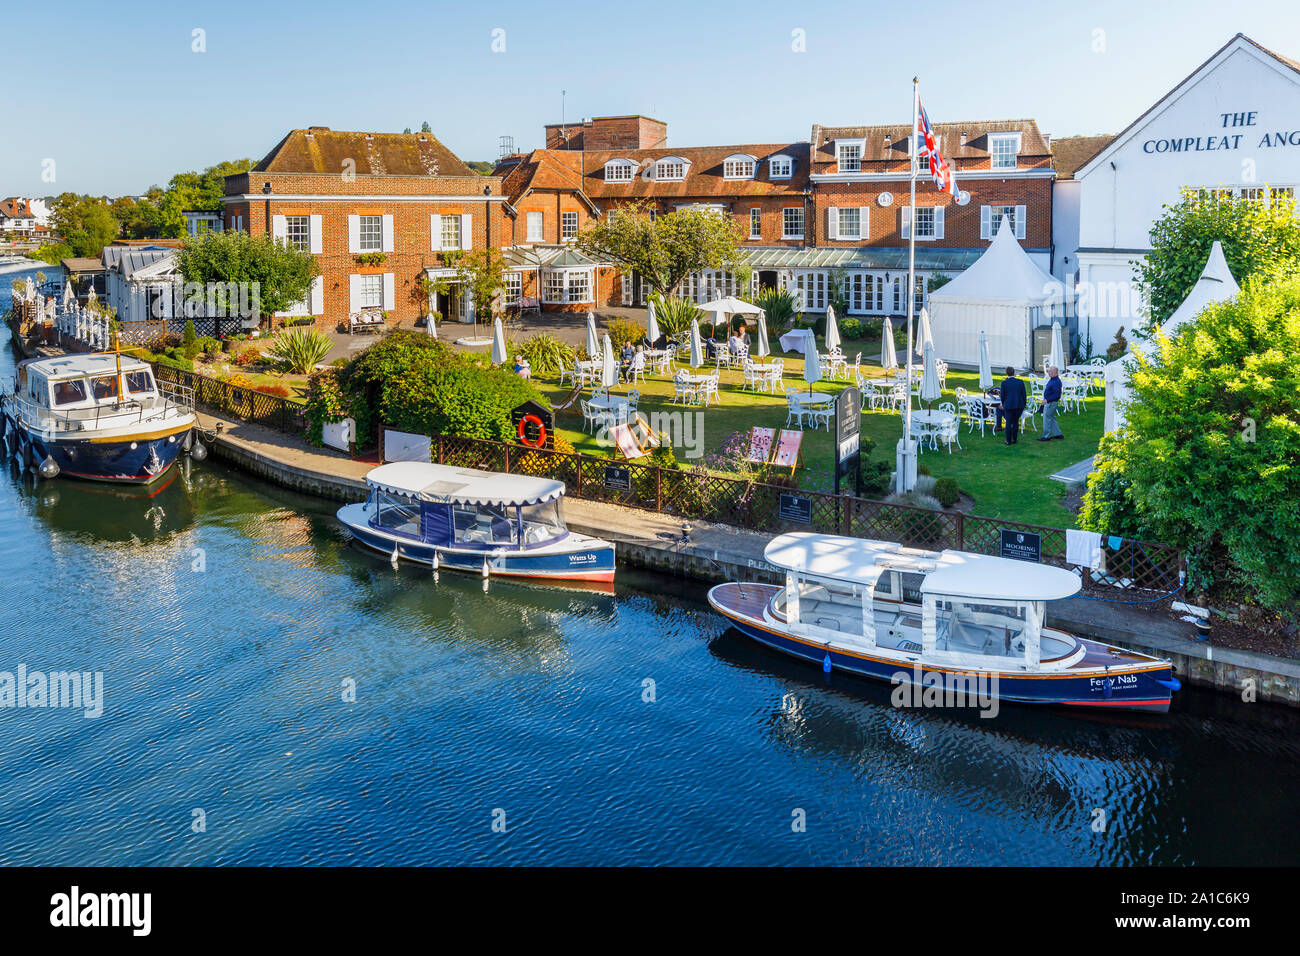 Marlow, a town on the River Thames in the Wycombe district of Buckinghamshire, southeast England: riverside view of The Compleat Angler Stock Photo